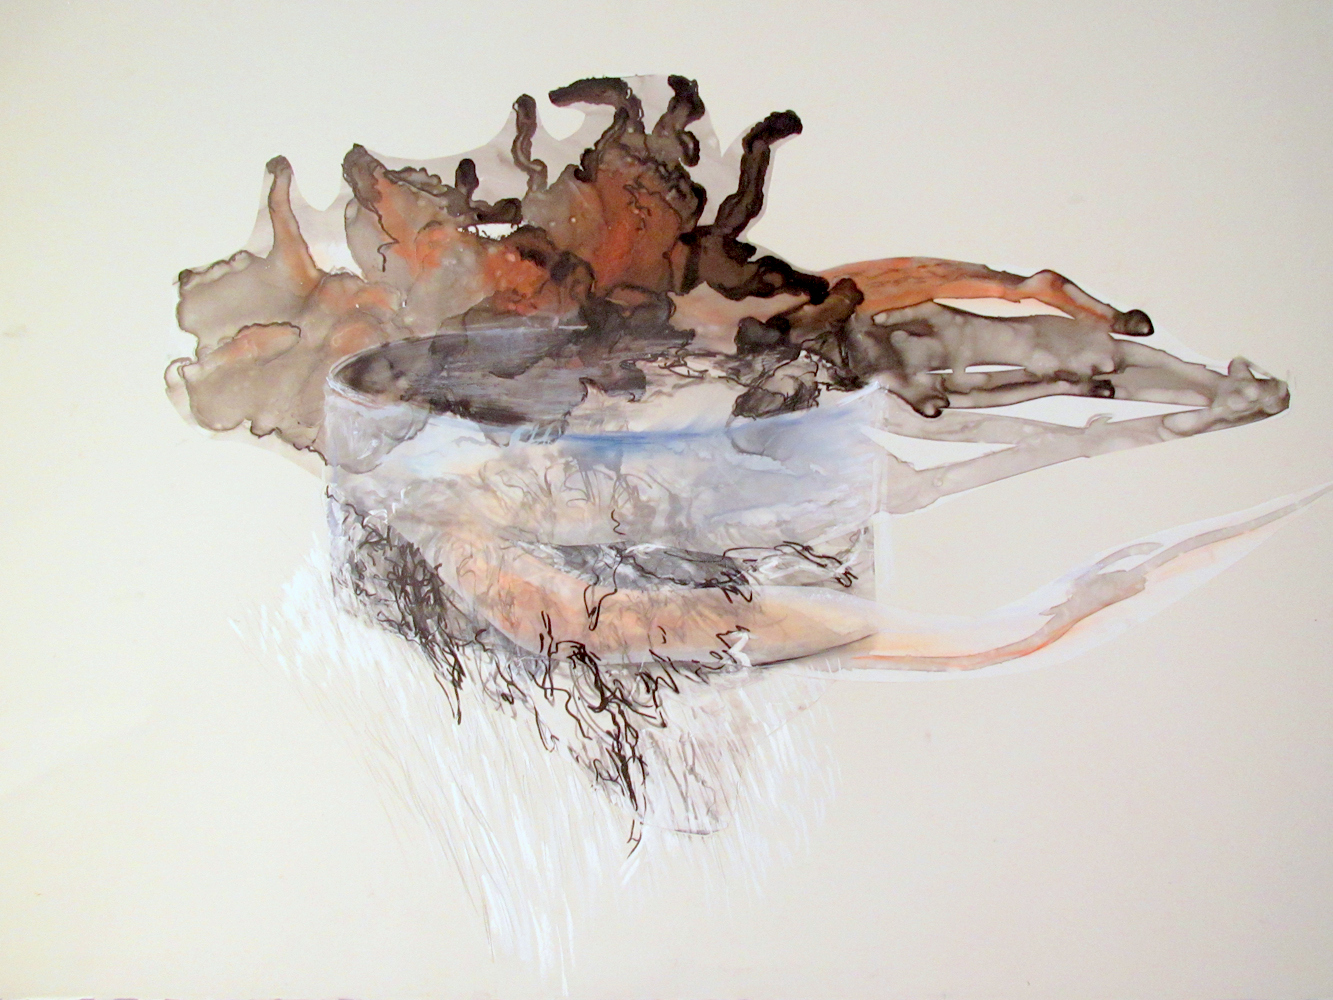 Wishing Water Well , 2013, Graphite, pastel on paper and mylar, 24 x 36 inches